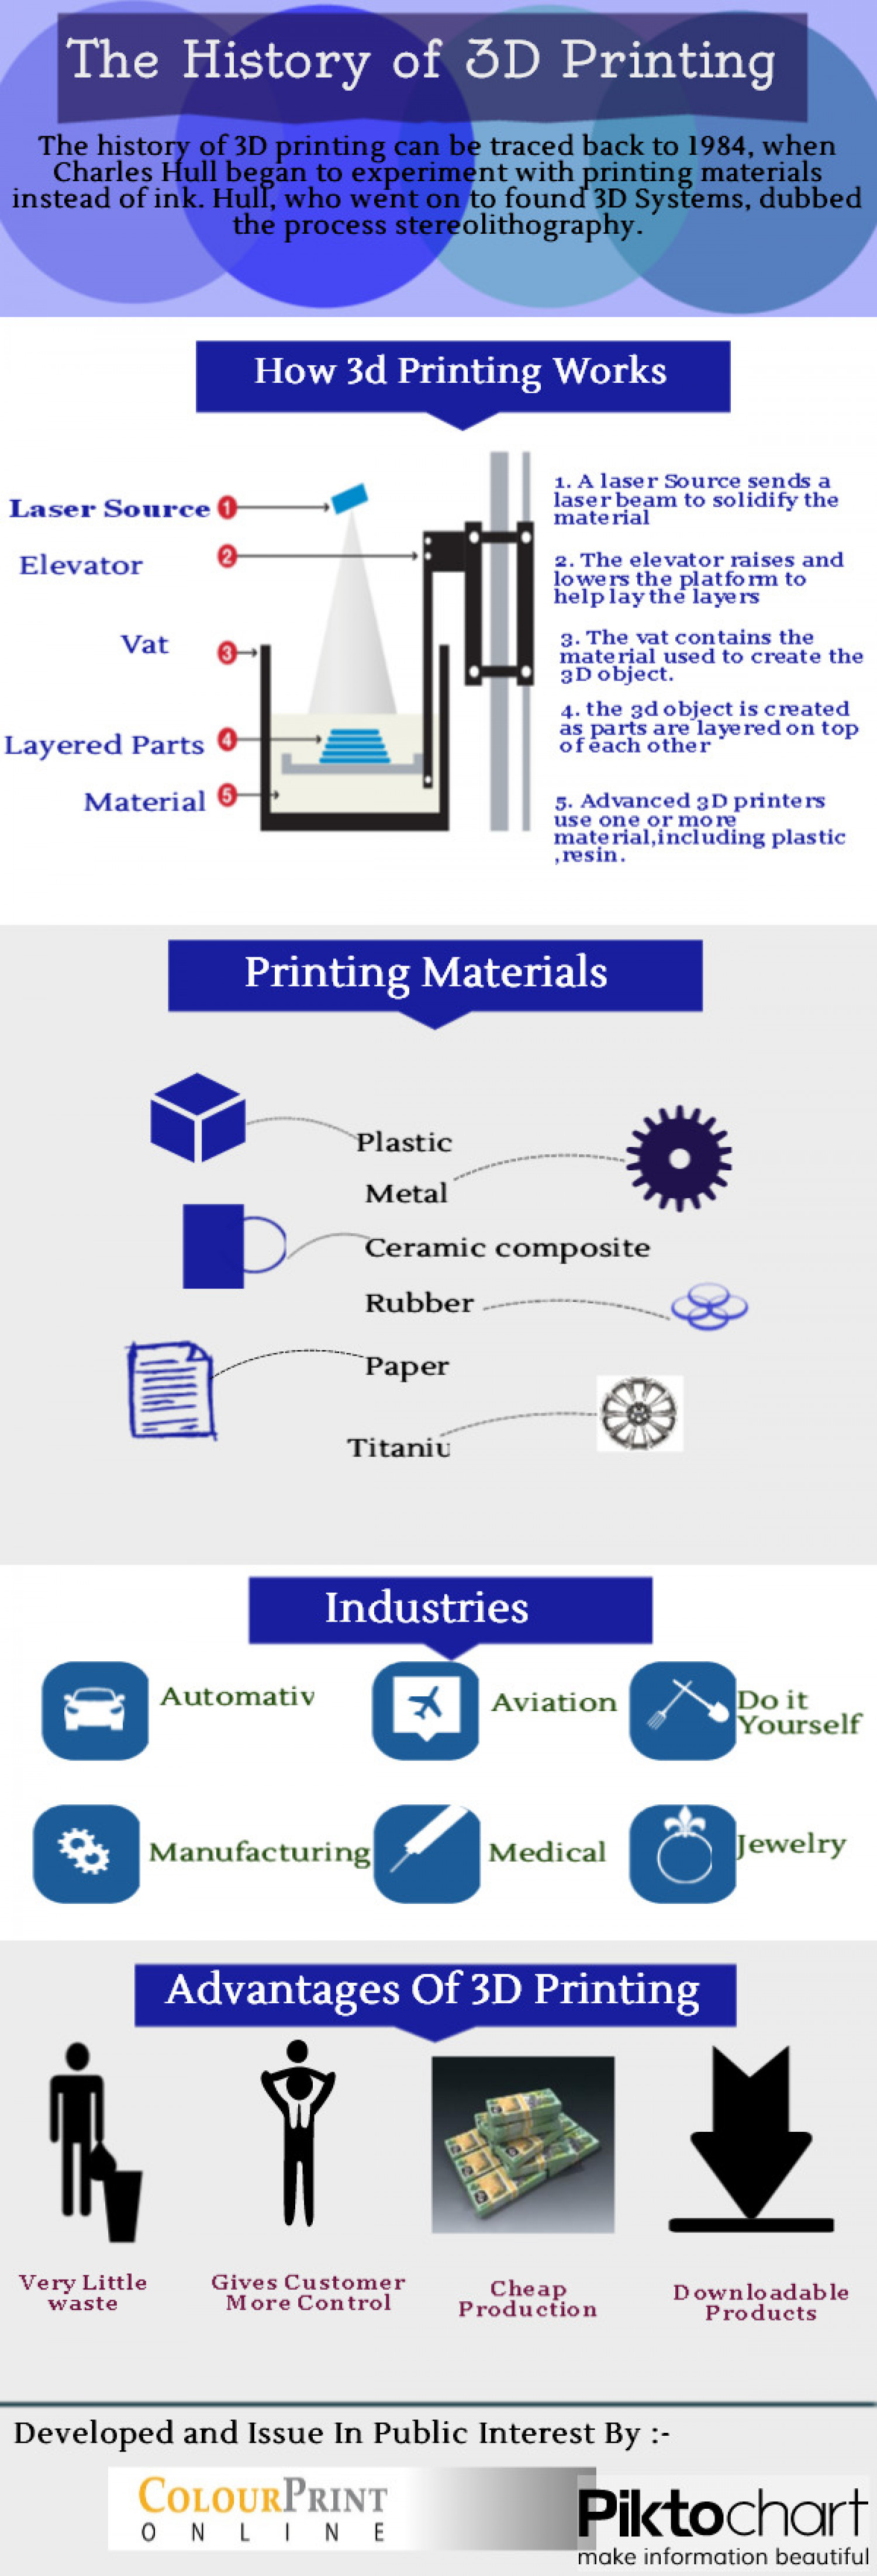 The History of 3D Printing Infographic